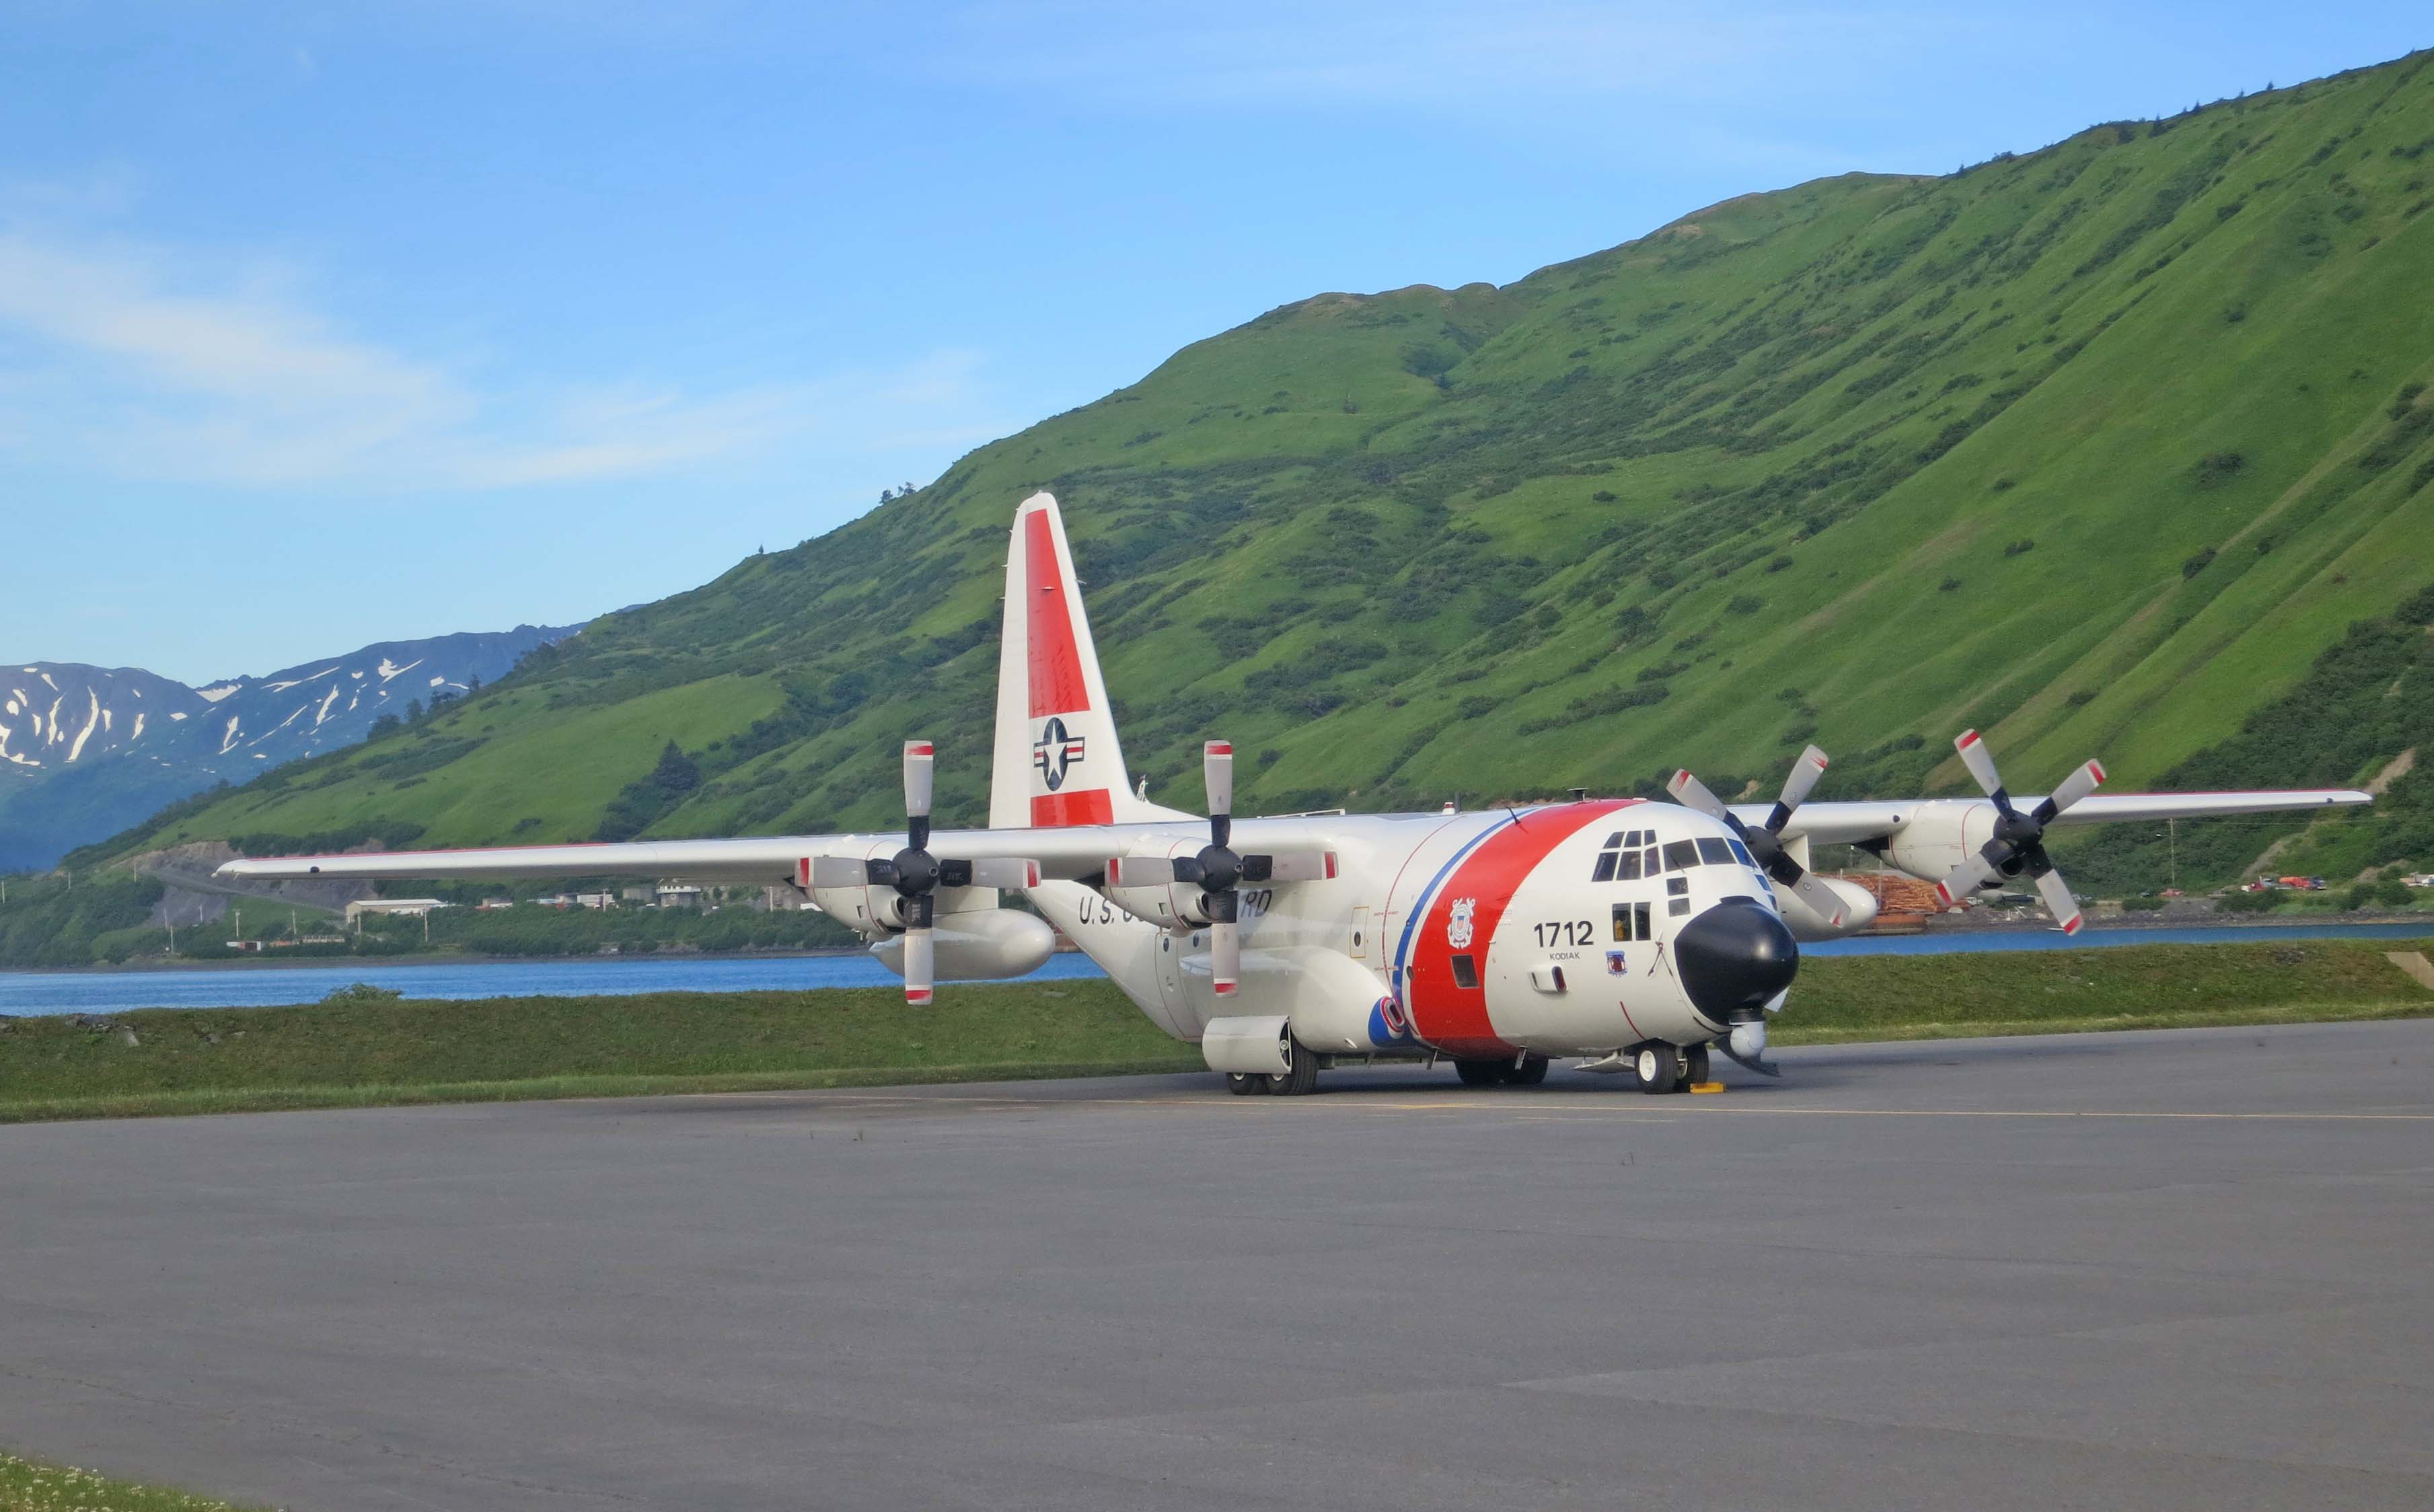 The fixed-wing C-130 also flies out of the Kodiak Air Station.